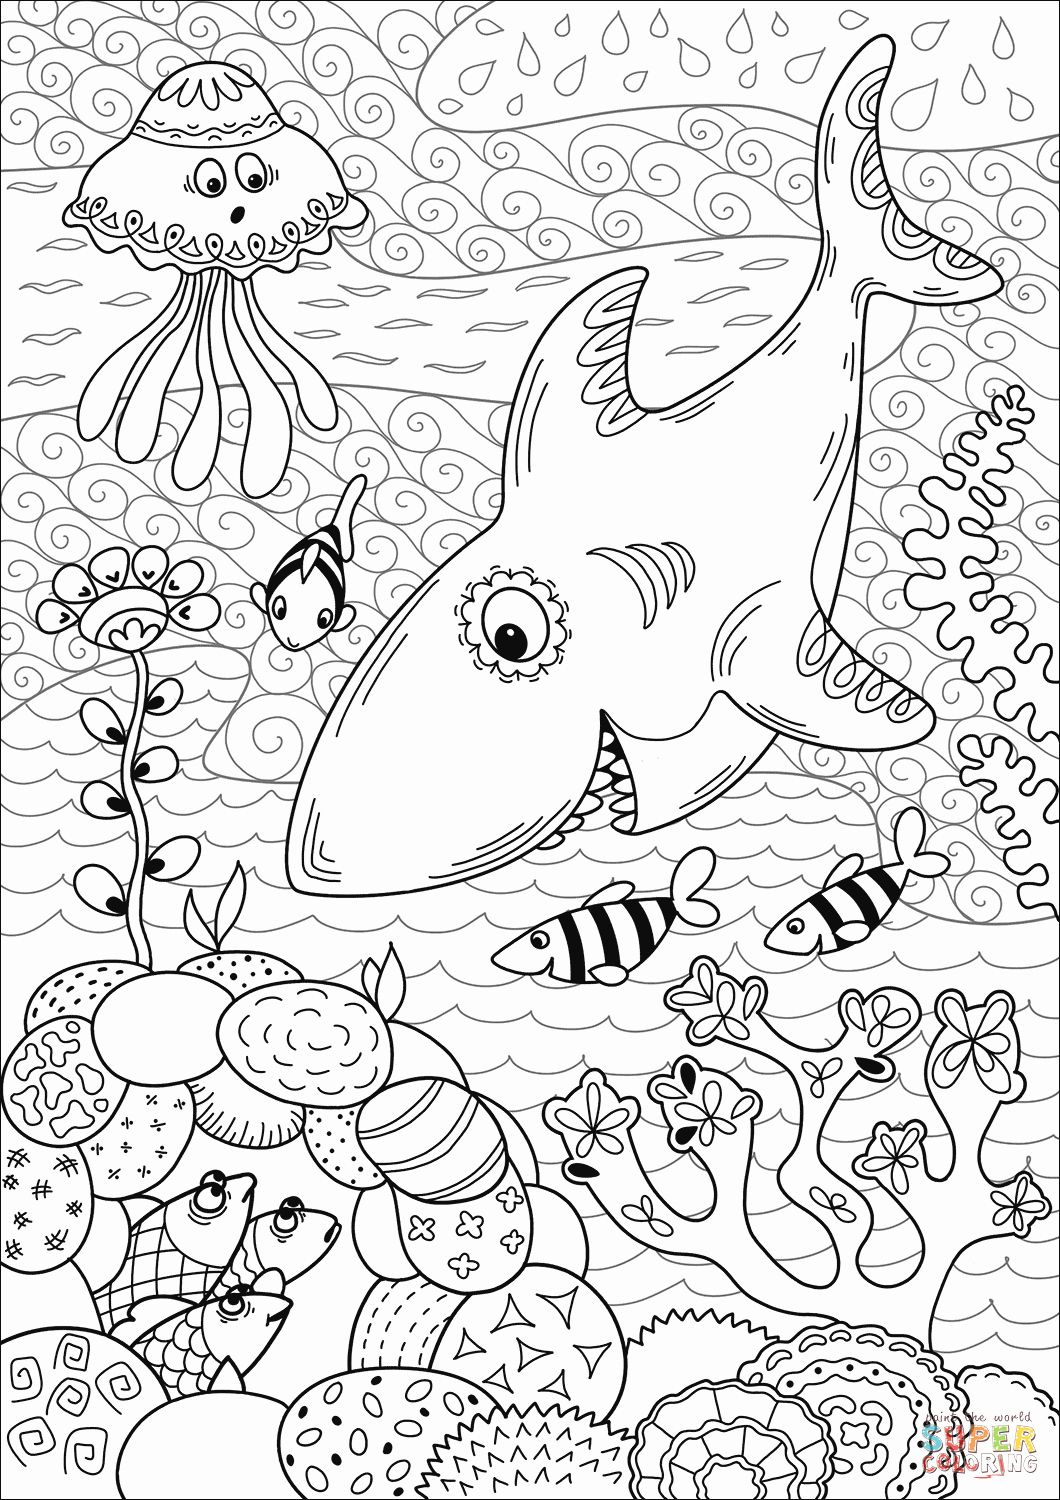 Coral Reef Coloring Page Fresh Shark Hunting In Coral Reef